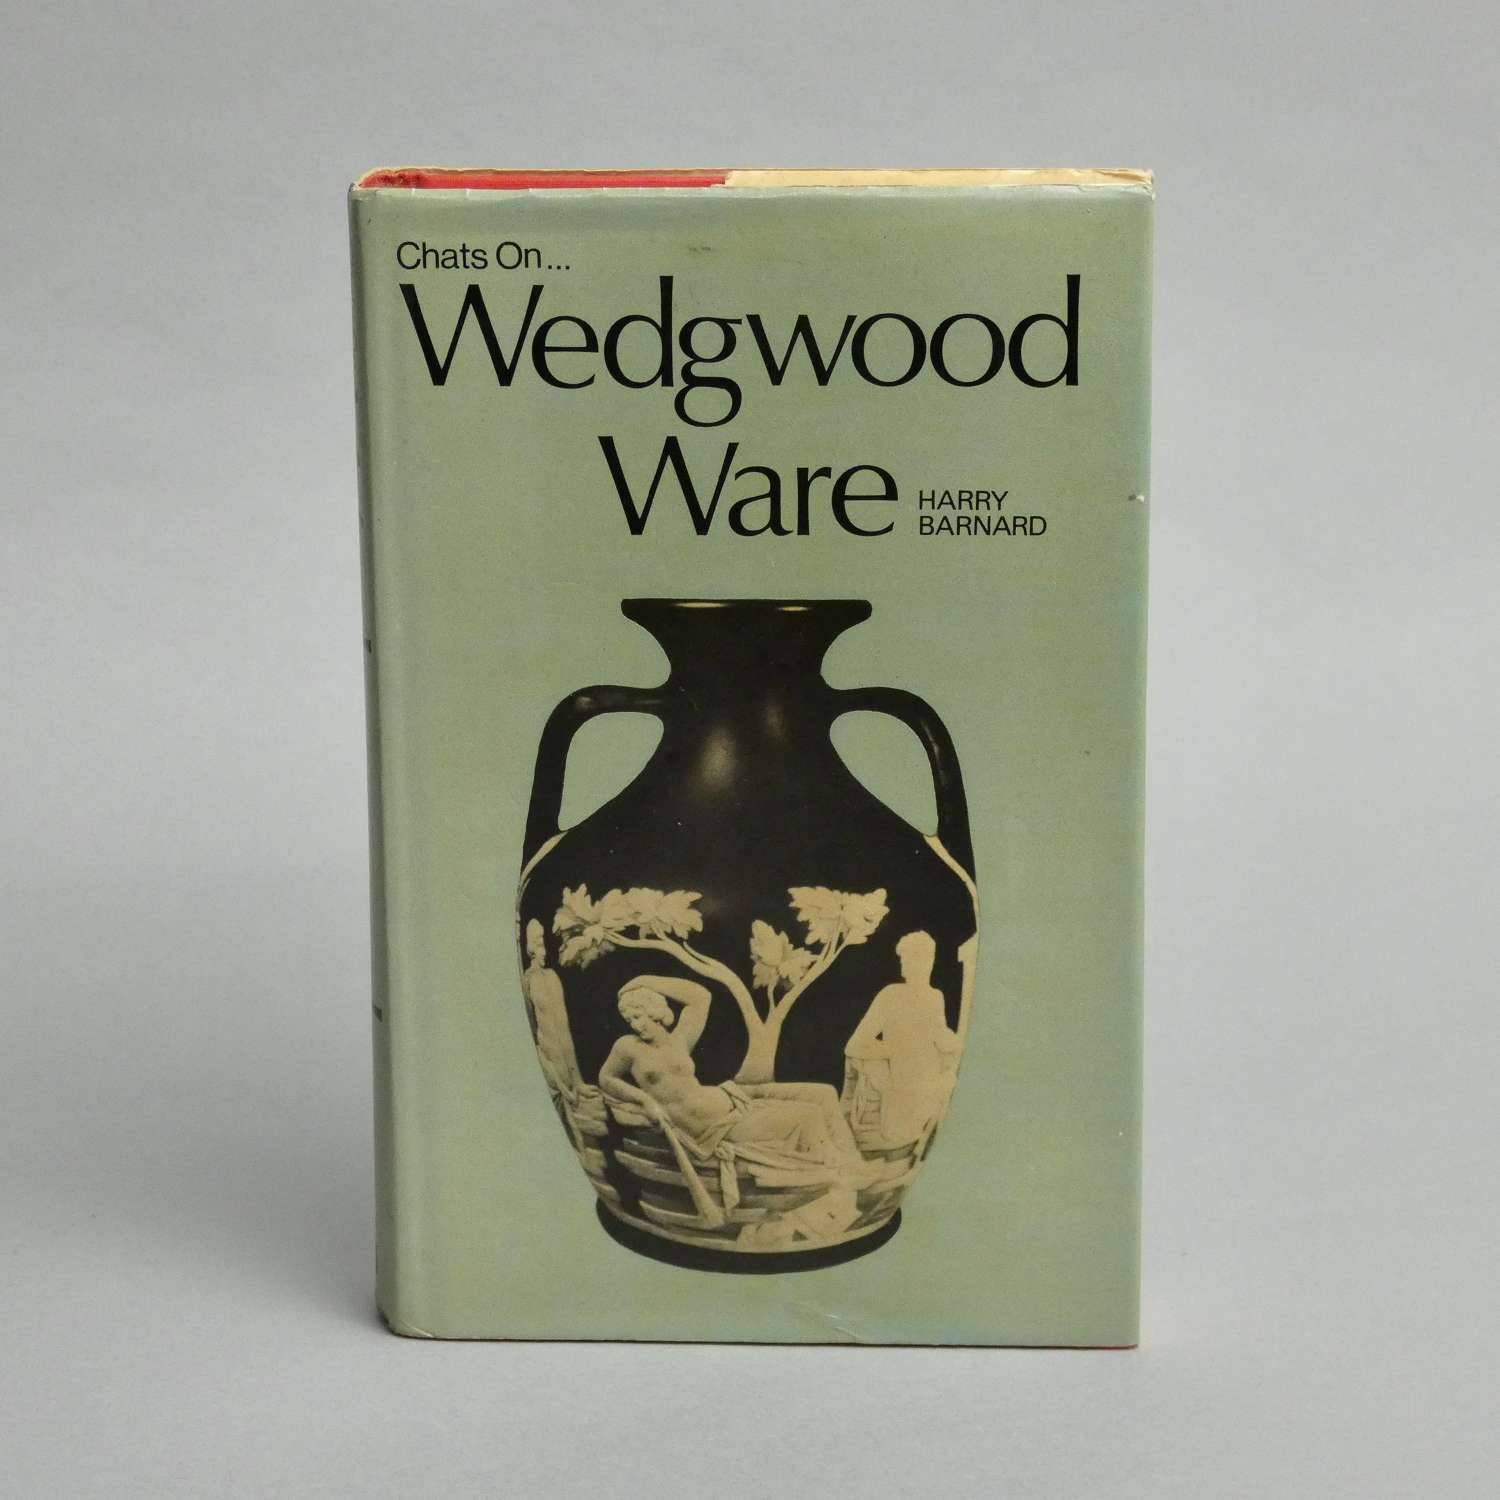 Chats on Wedgwood Ware